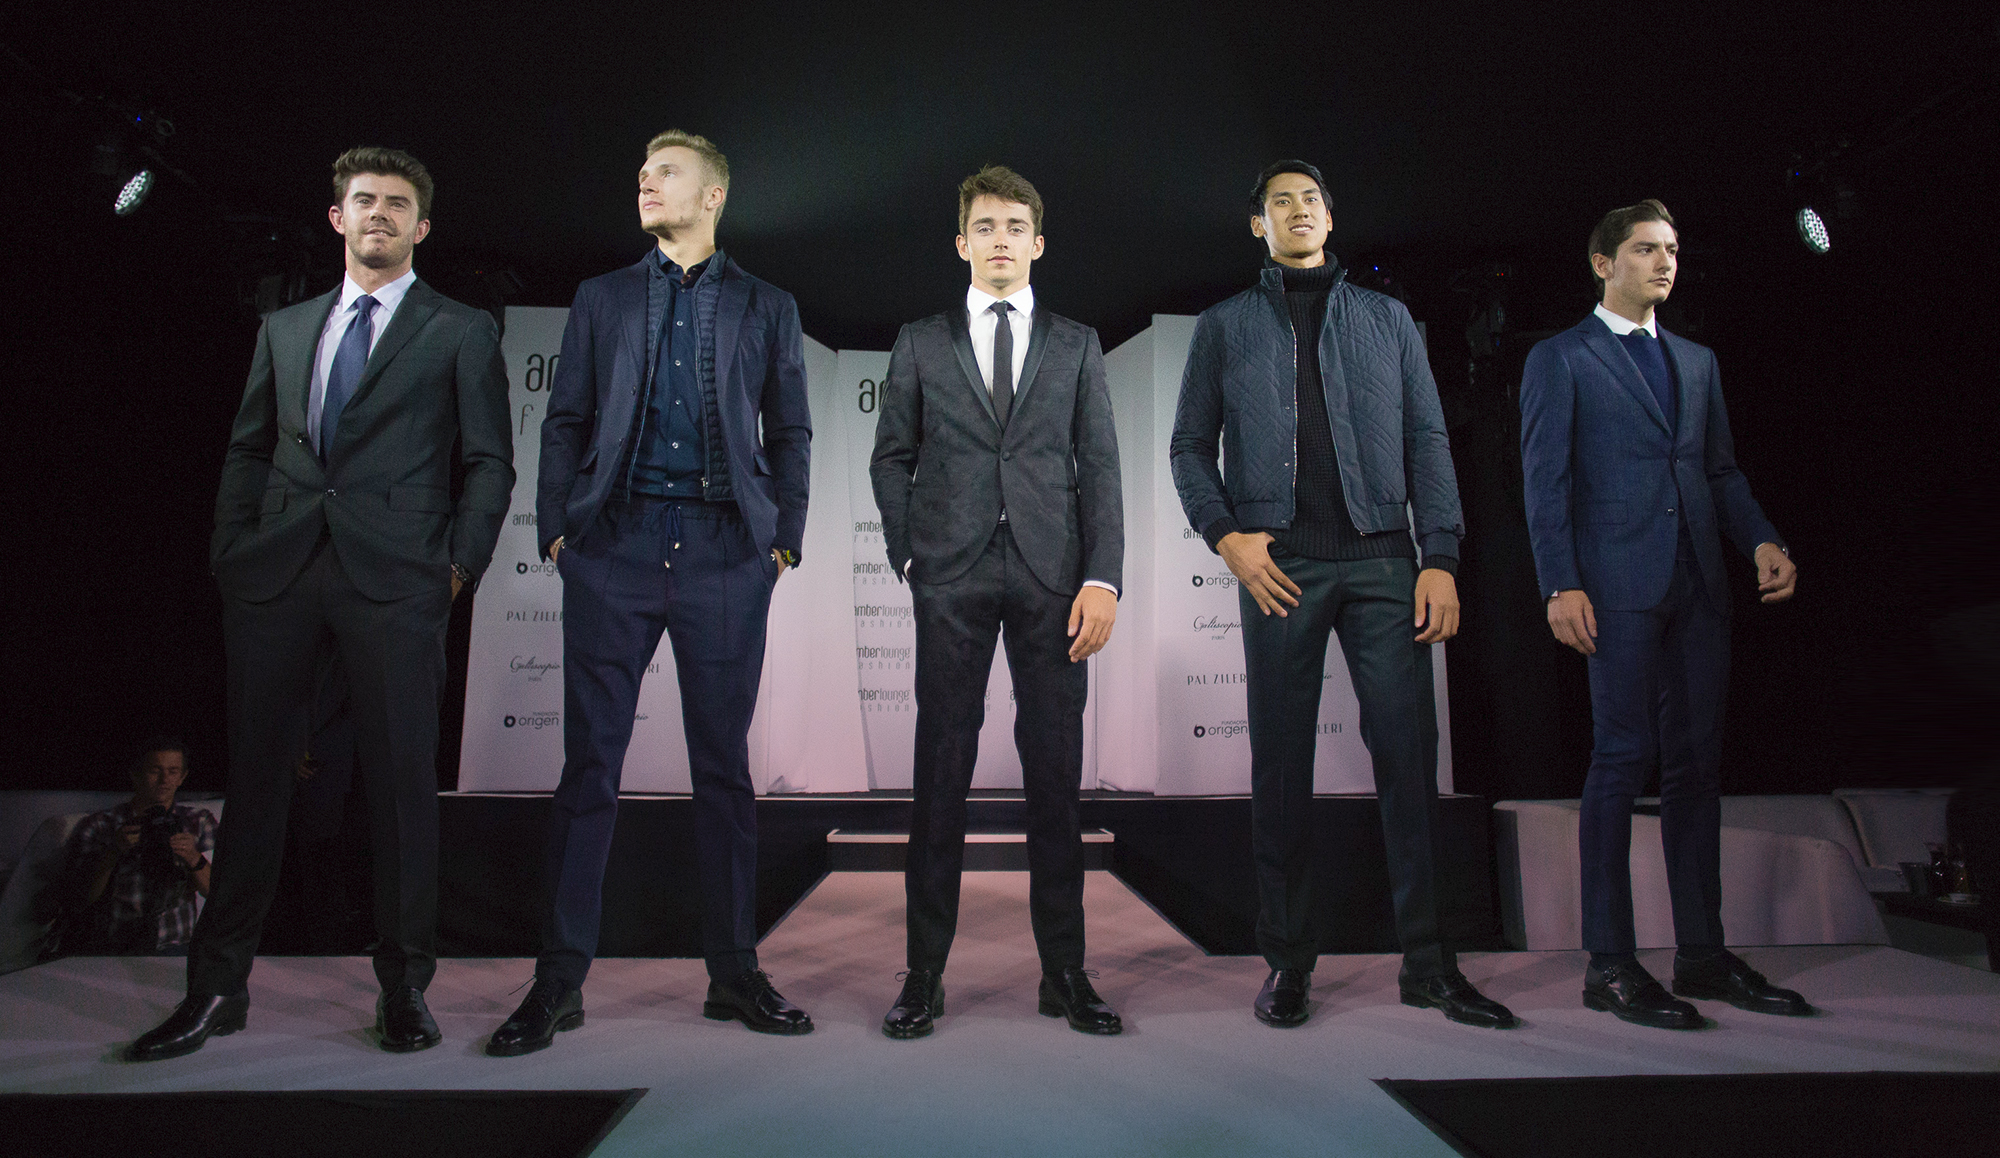 Amber Lounge Mexico City 2017 - F1 Drivers on the Runway